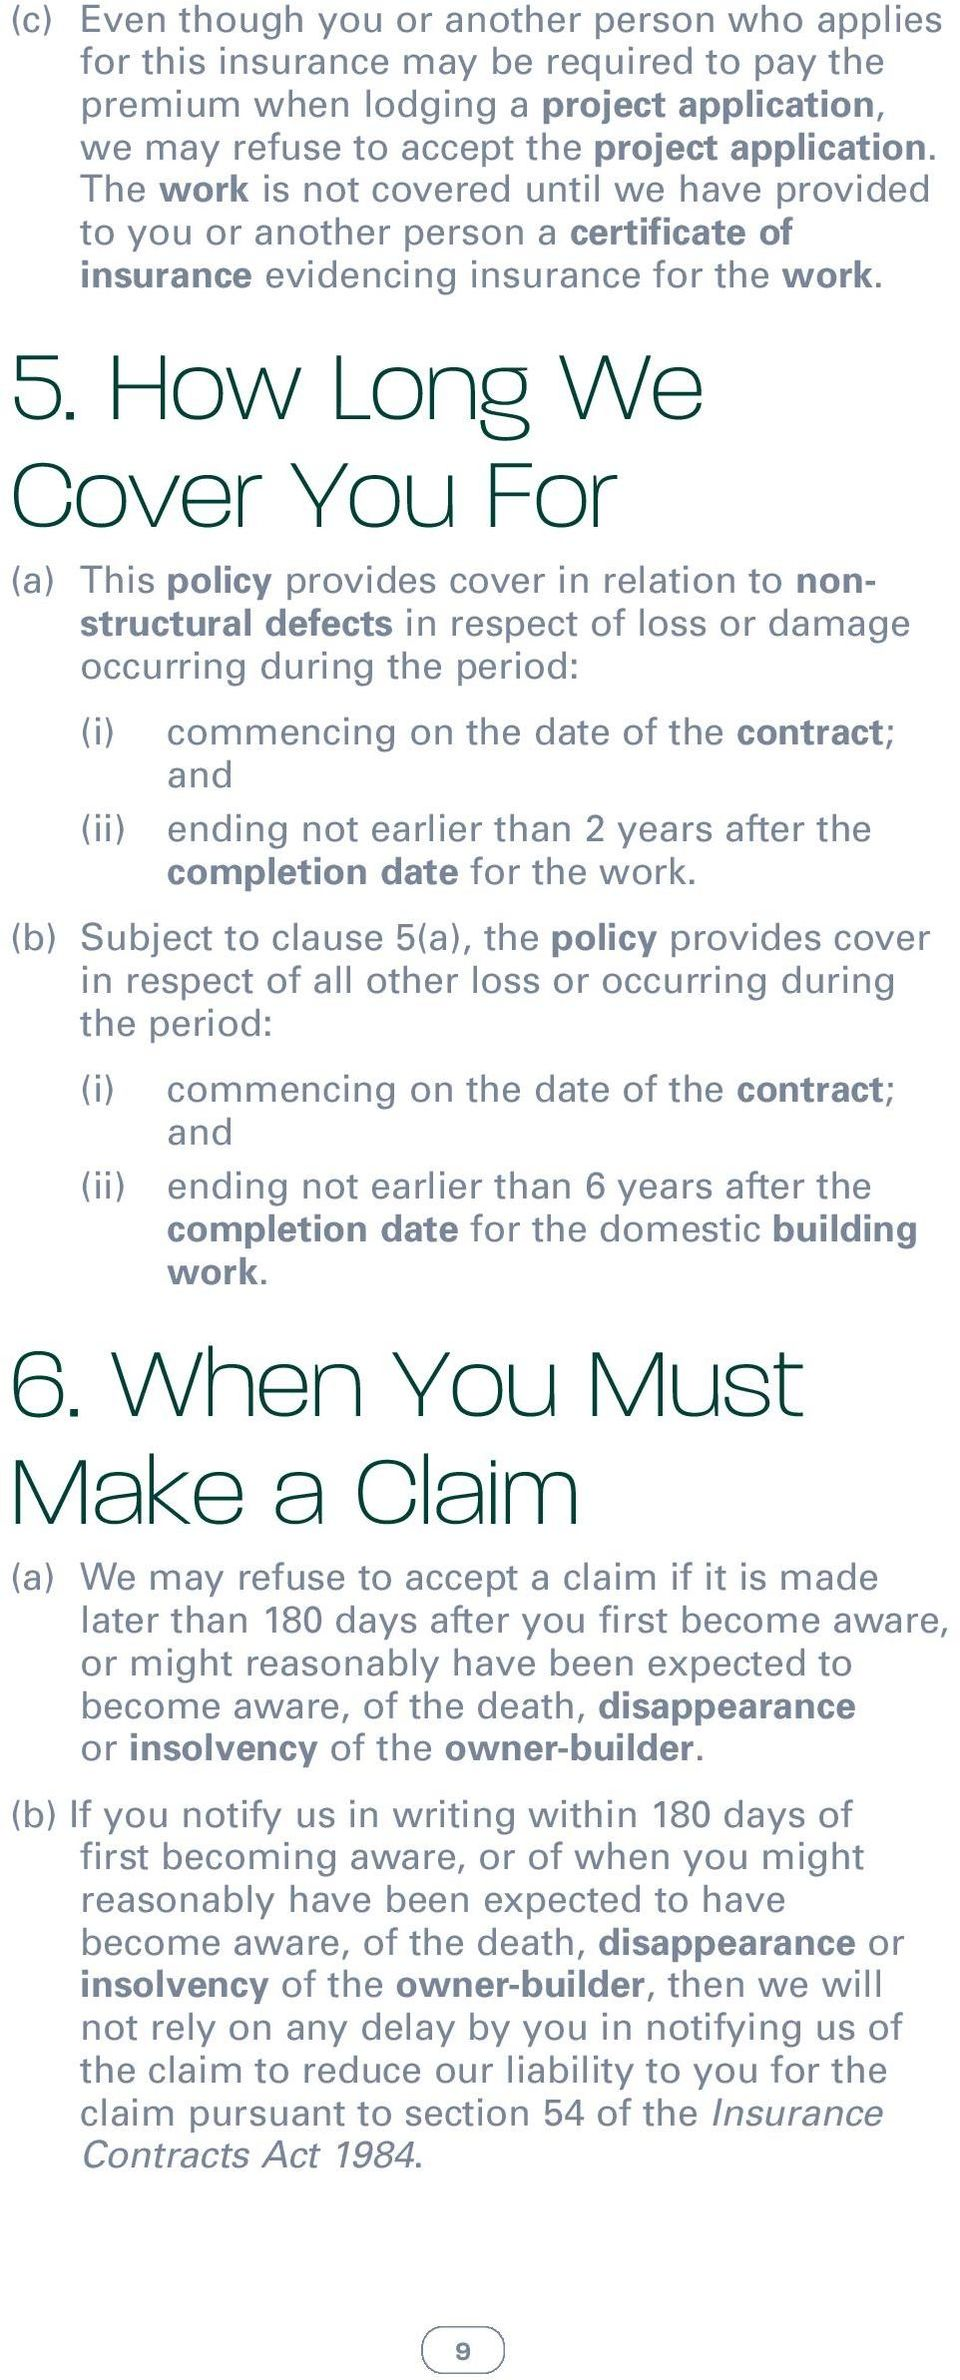 How Long We Cover You For (a) This policy provides cover in relation to nonstructural defects in respect of loss or damage occurring during the period: (i) commencing on the date of the contract; and